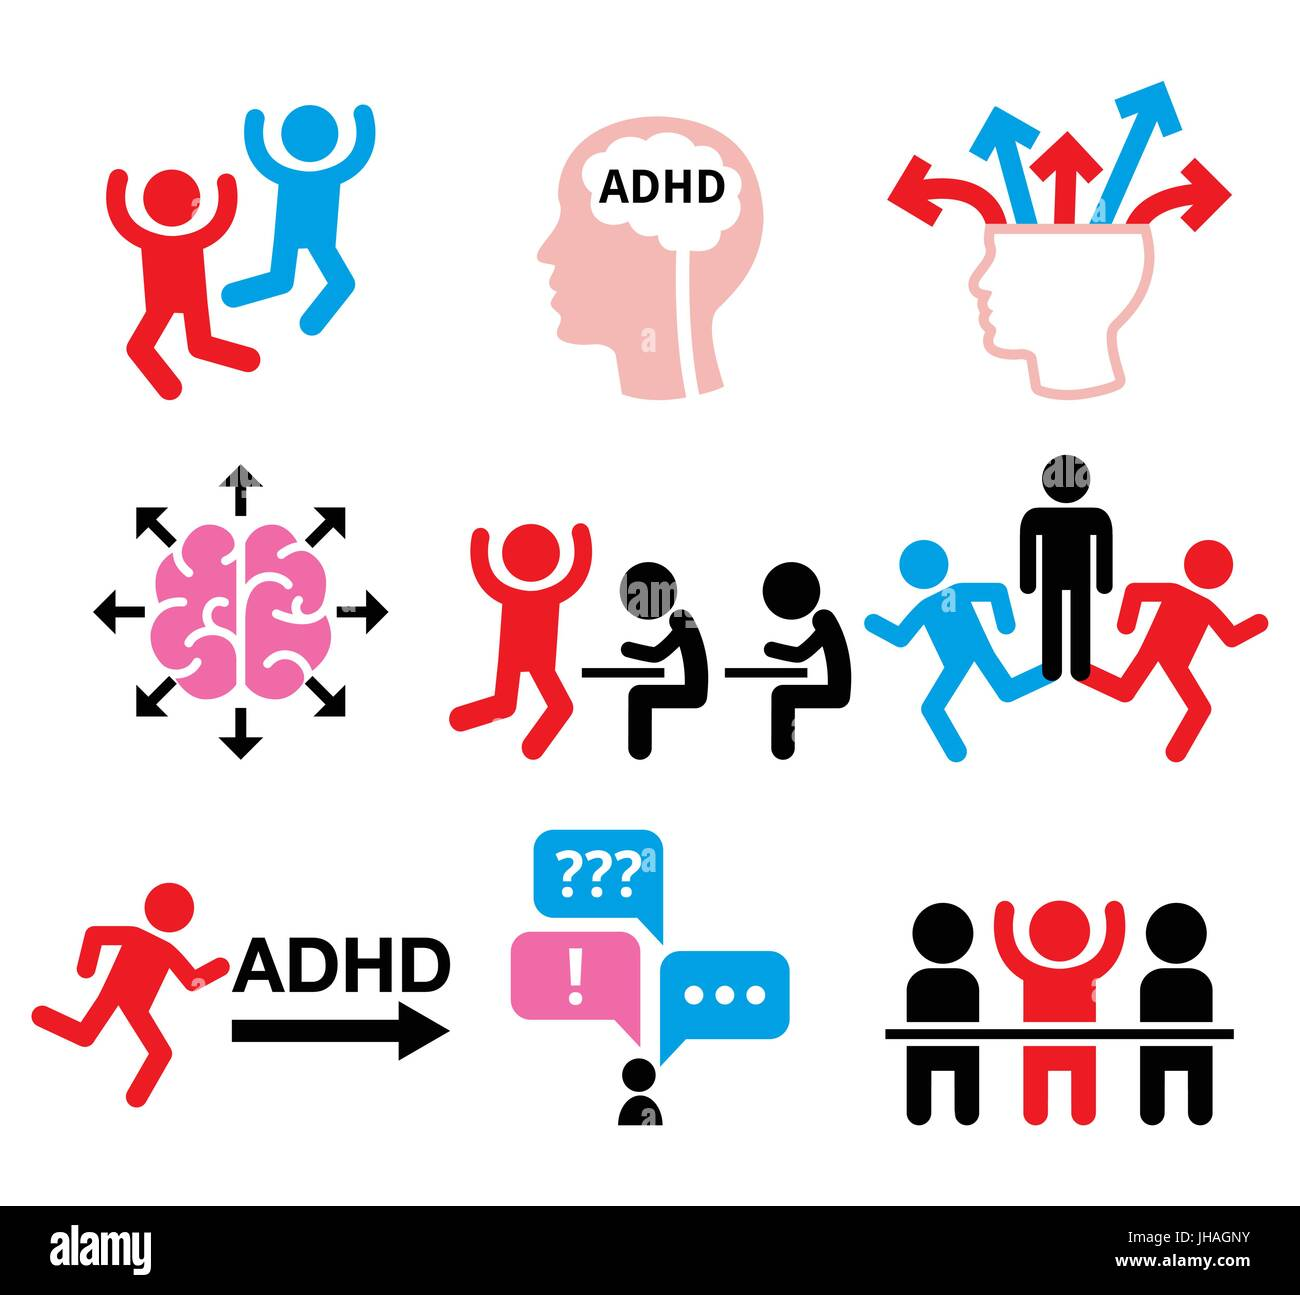 ADHD - Attention deficit hyperactivity disorder vector icons set    Health icons set - people wish ADD or ADHD icons - Stock Vector